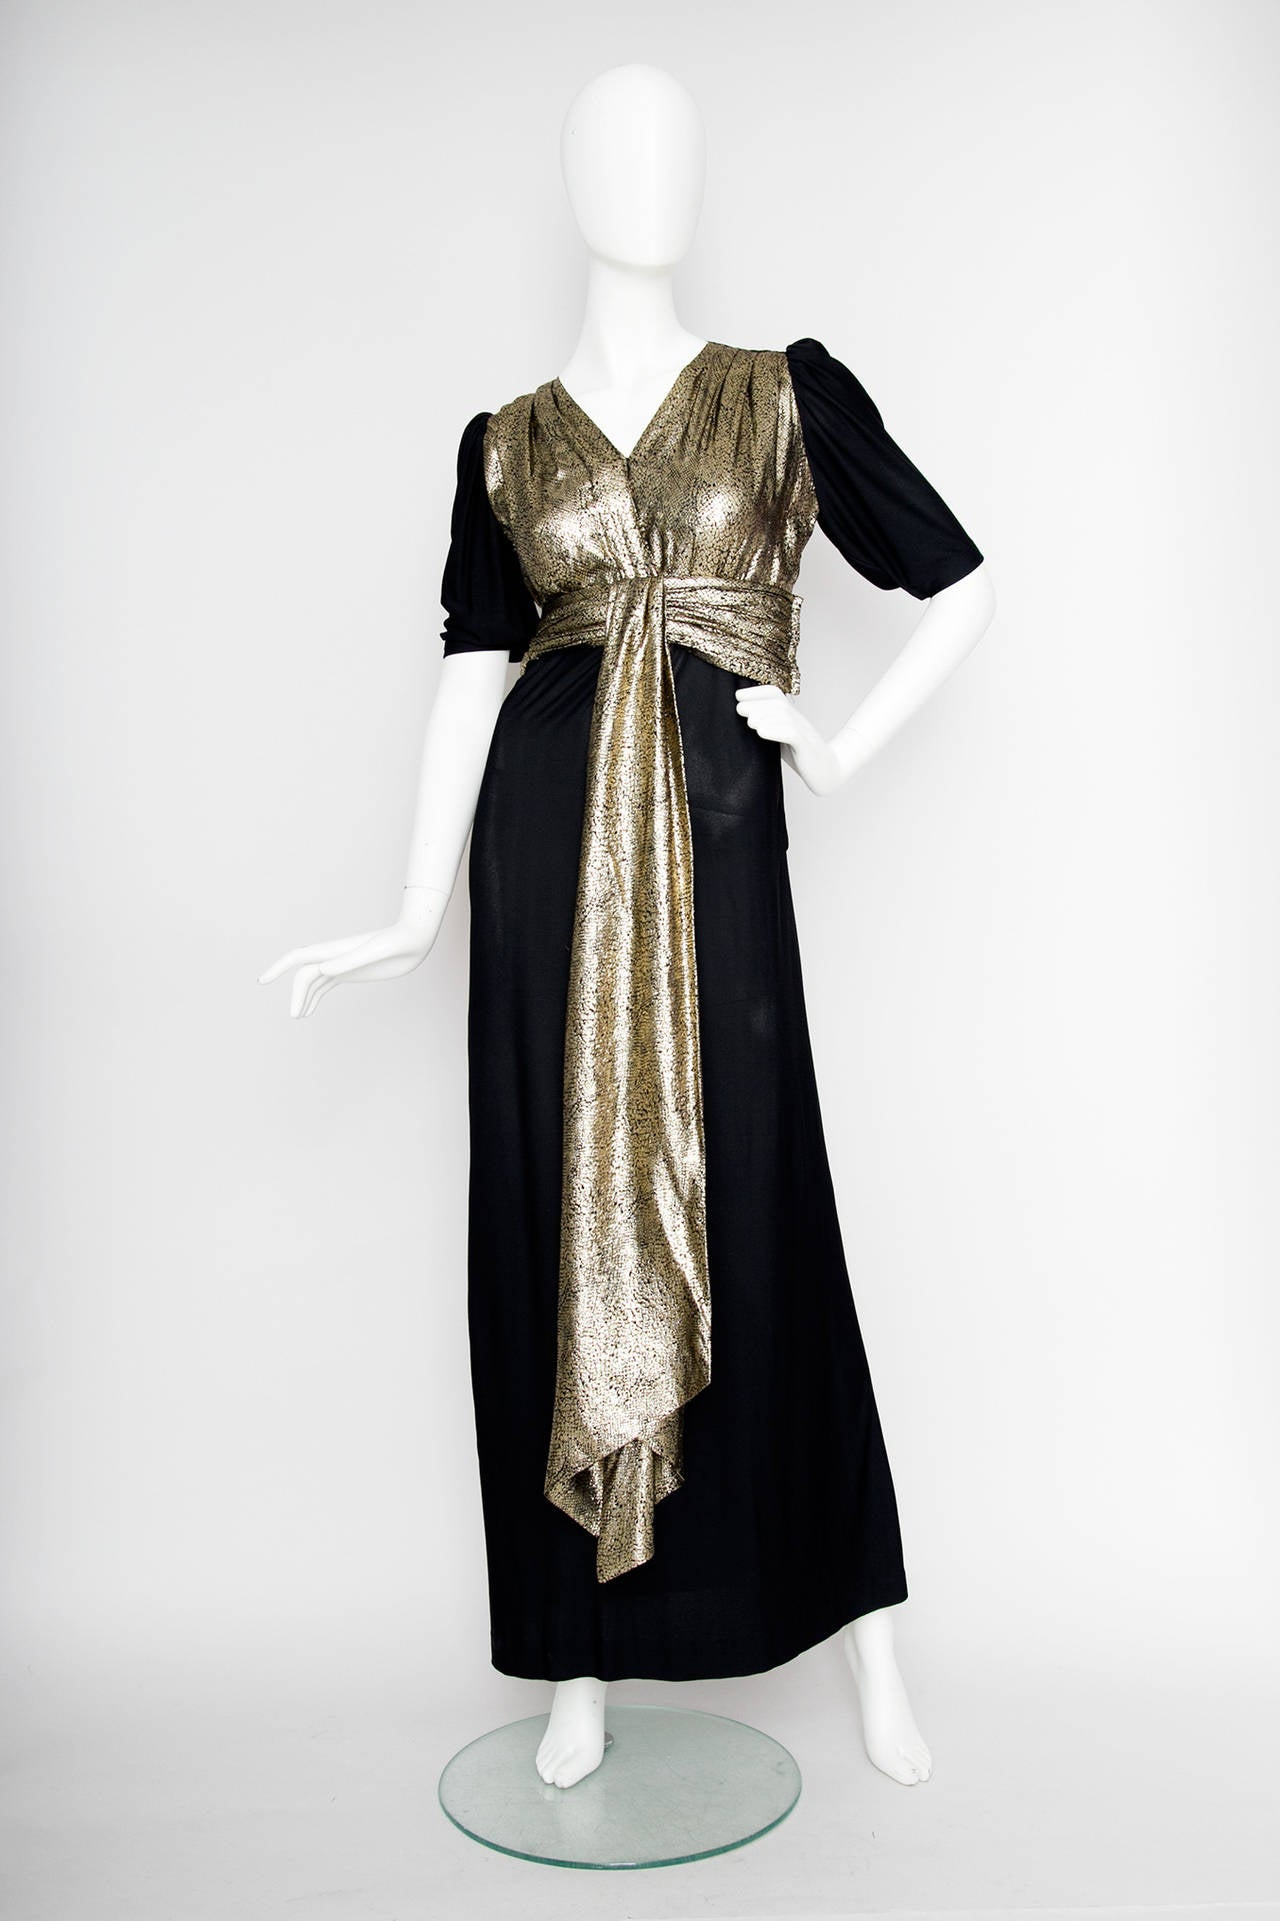 A 1970s silk jersey Yves Saint Laurent Rive Gauche black floor length evening dress with a gold-lamé top with a v-neckline, short sleeves and a detachable gold sash gently dropping down in the front of the dress.    The dress has a zipper closure